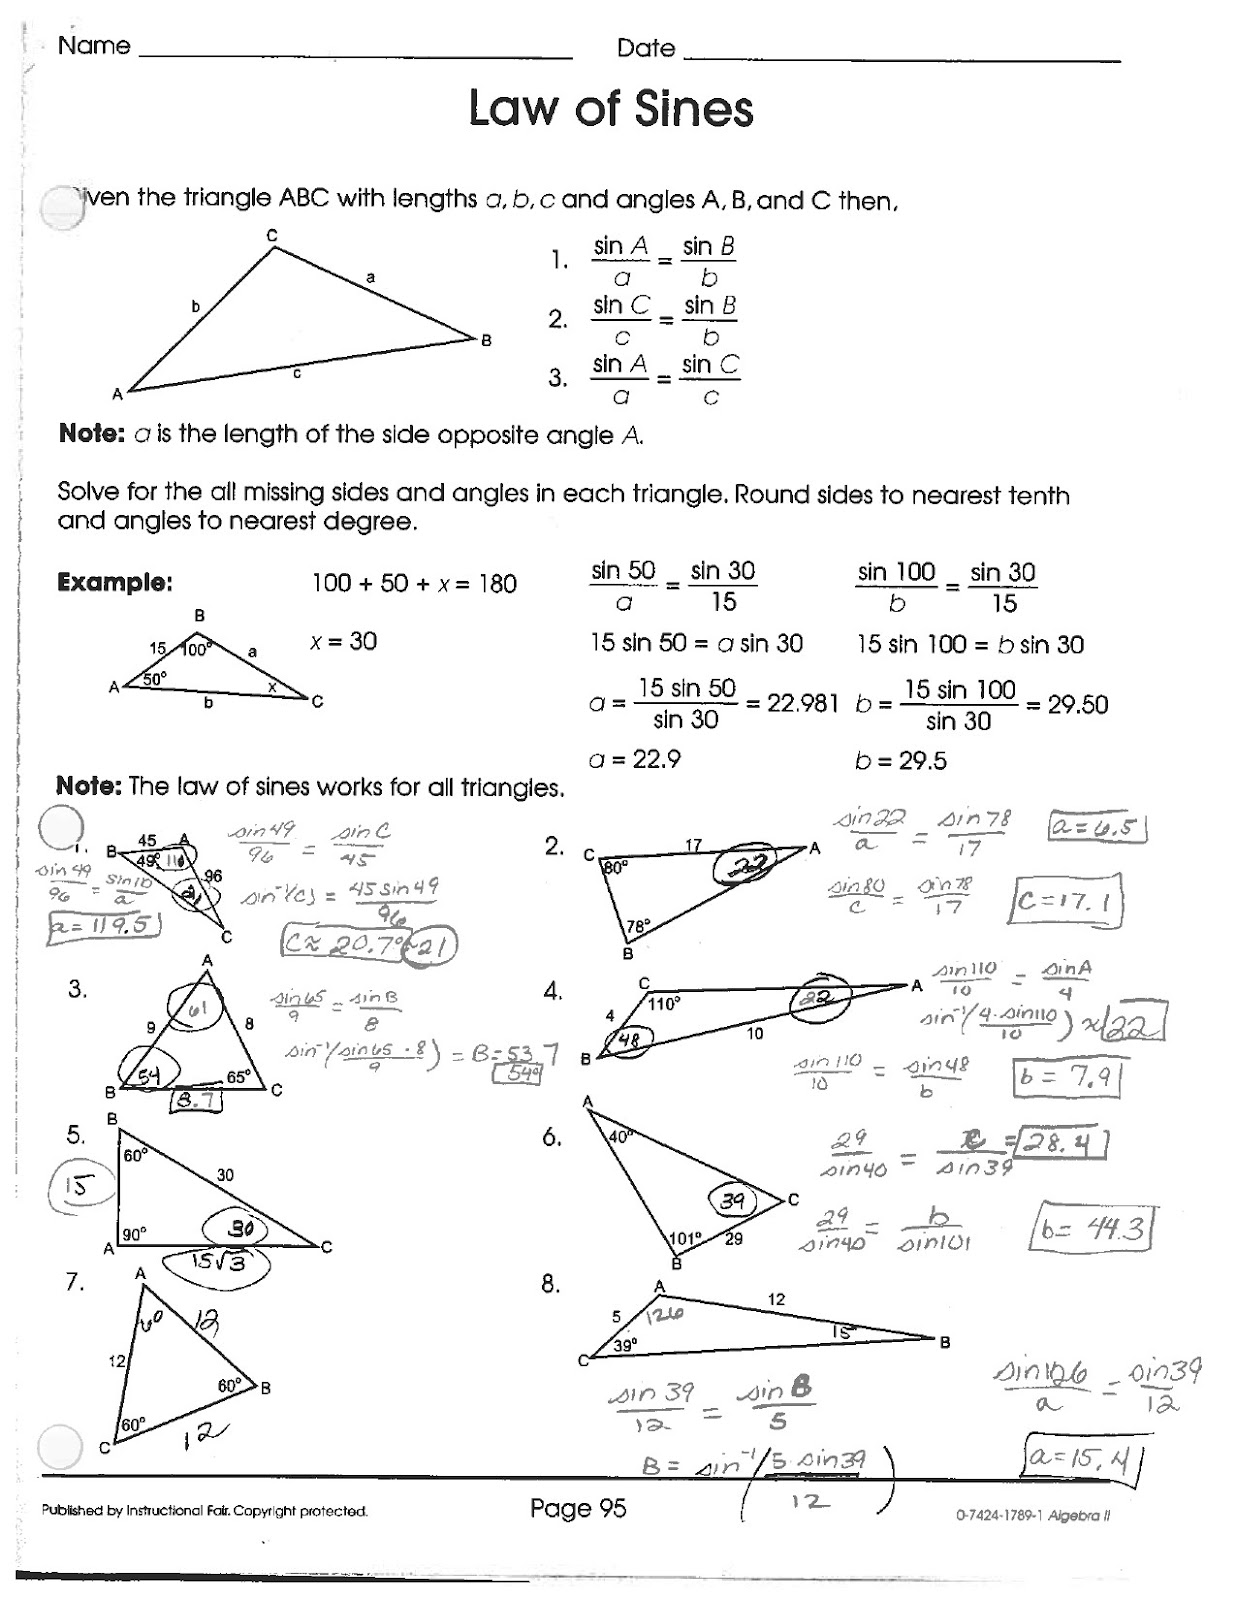 Free Worksheet Law Of Sines And Cosines Worksheet law of sines and cosines worksheet workbook site worksheet